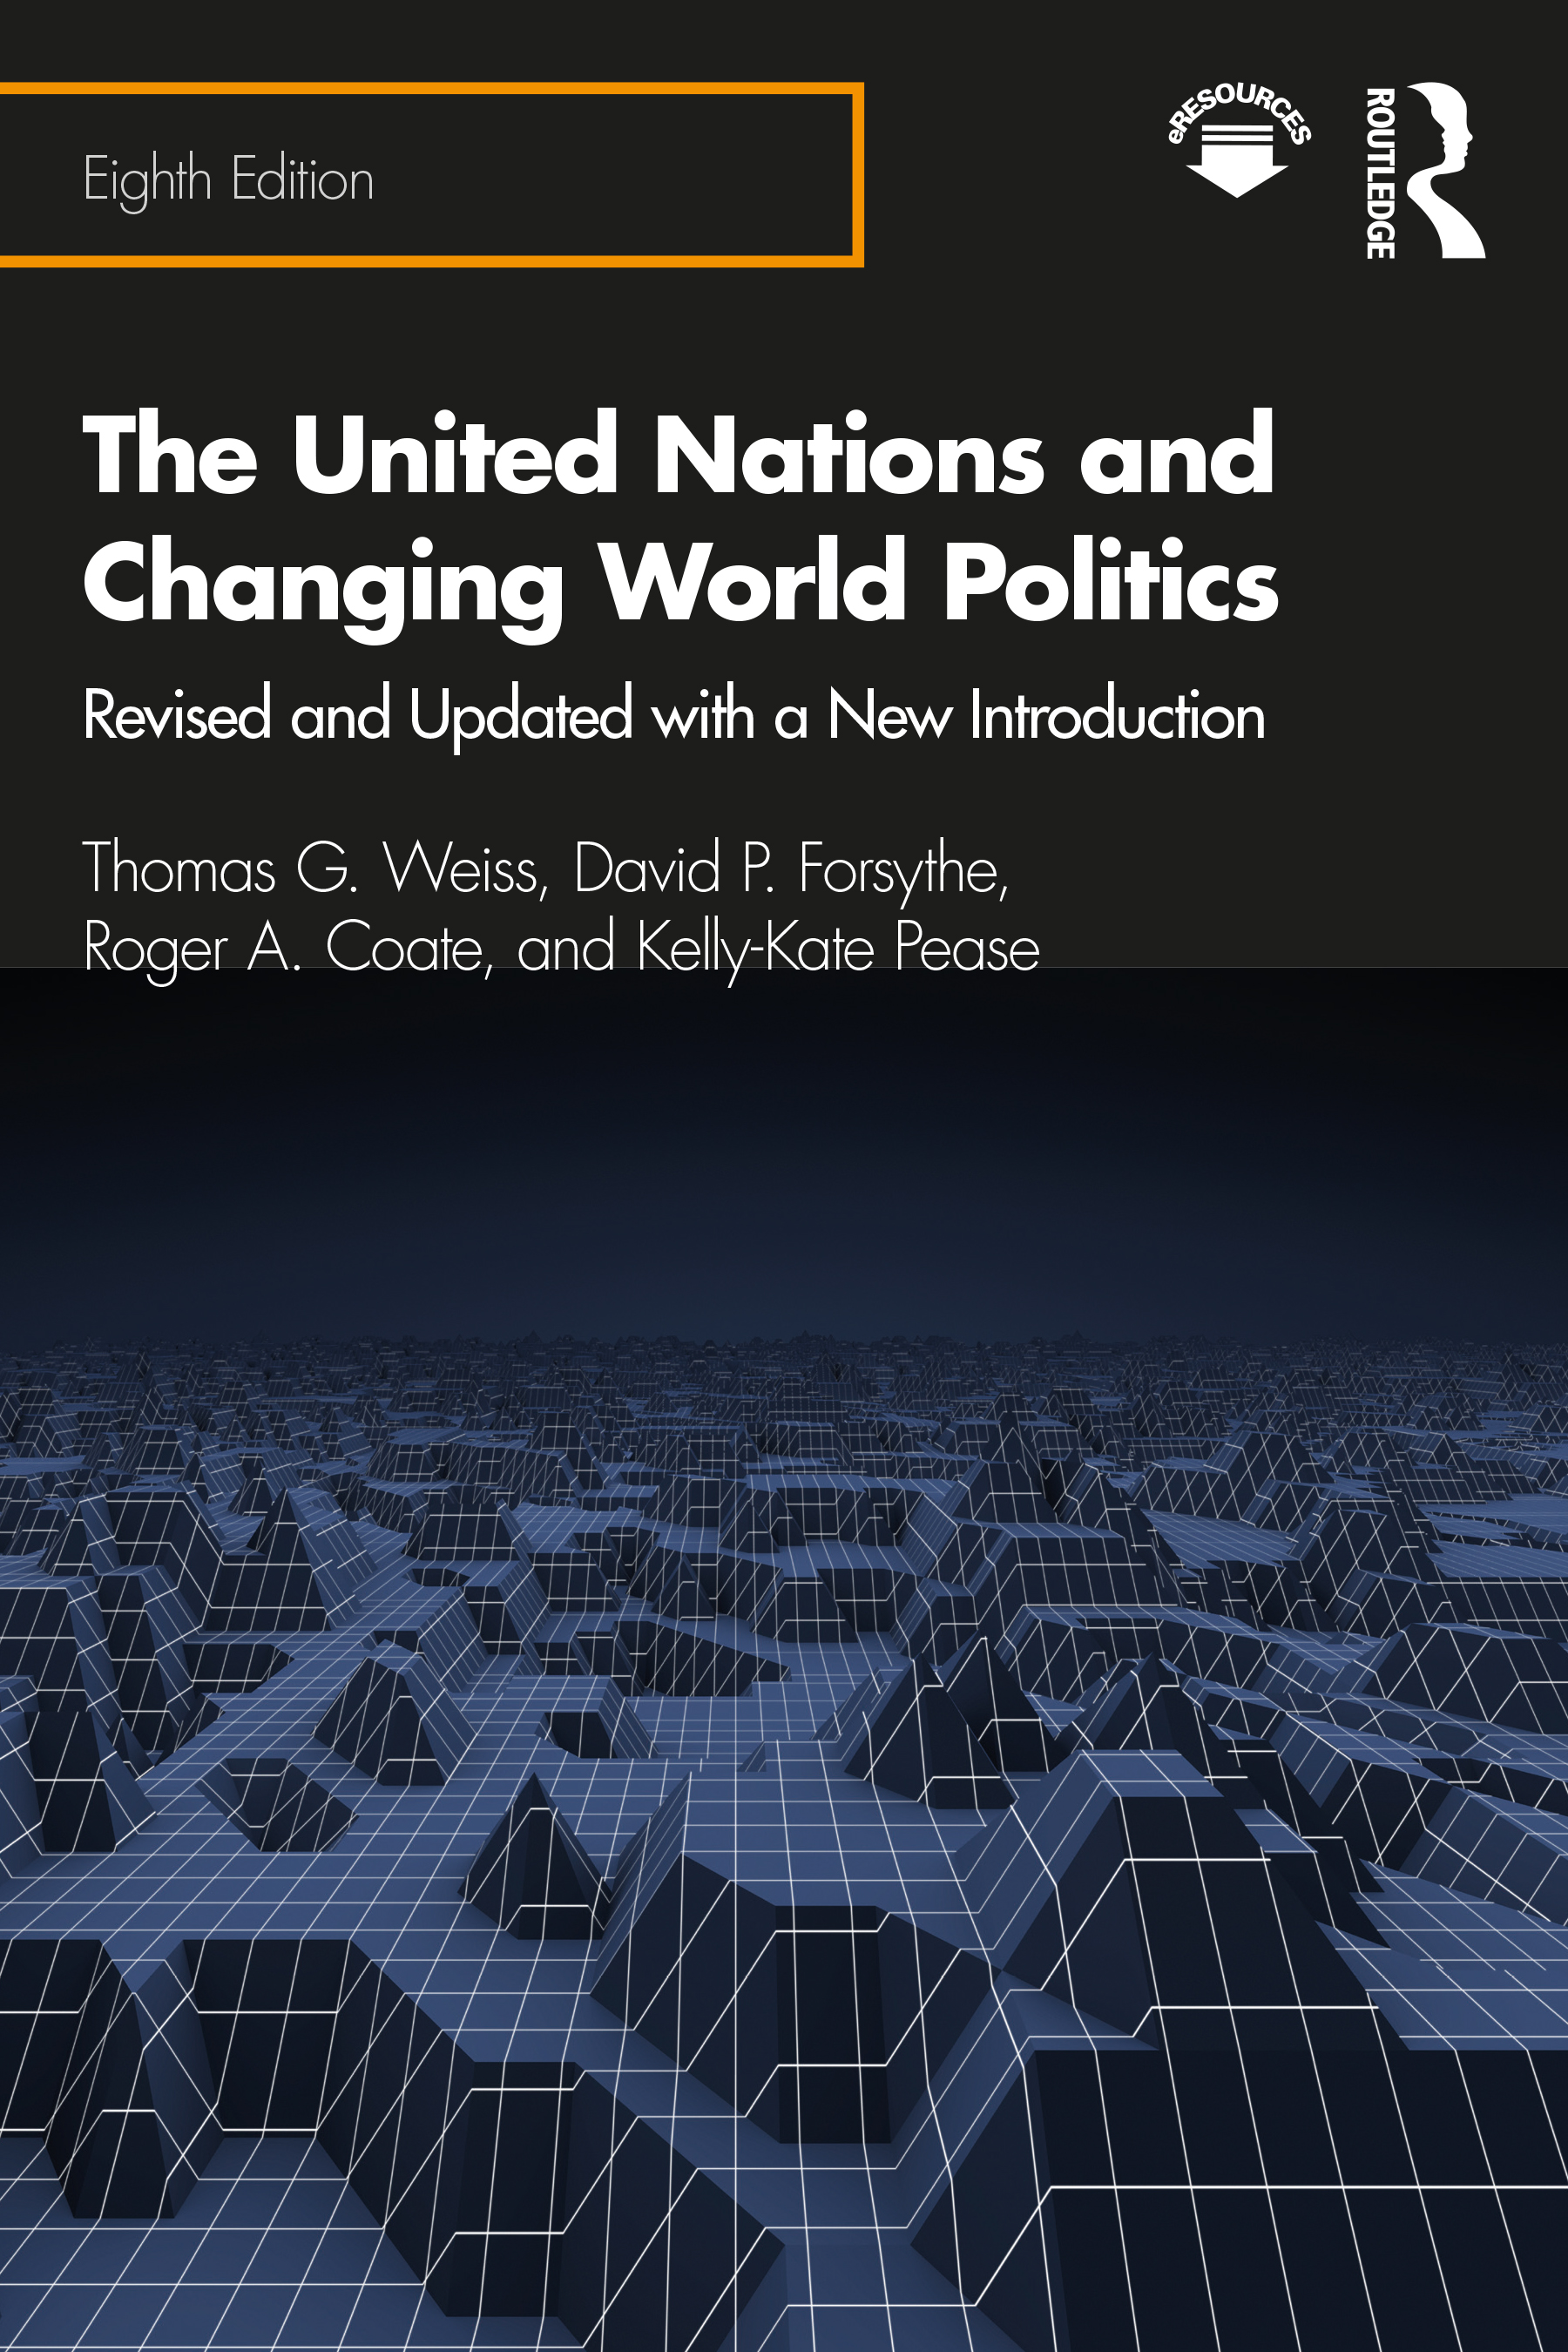 The United Nations and Changing World Politics: Revised and Updated with a New Introduction book cover